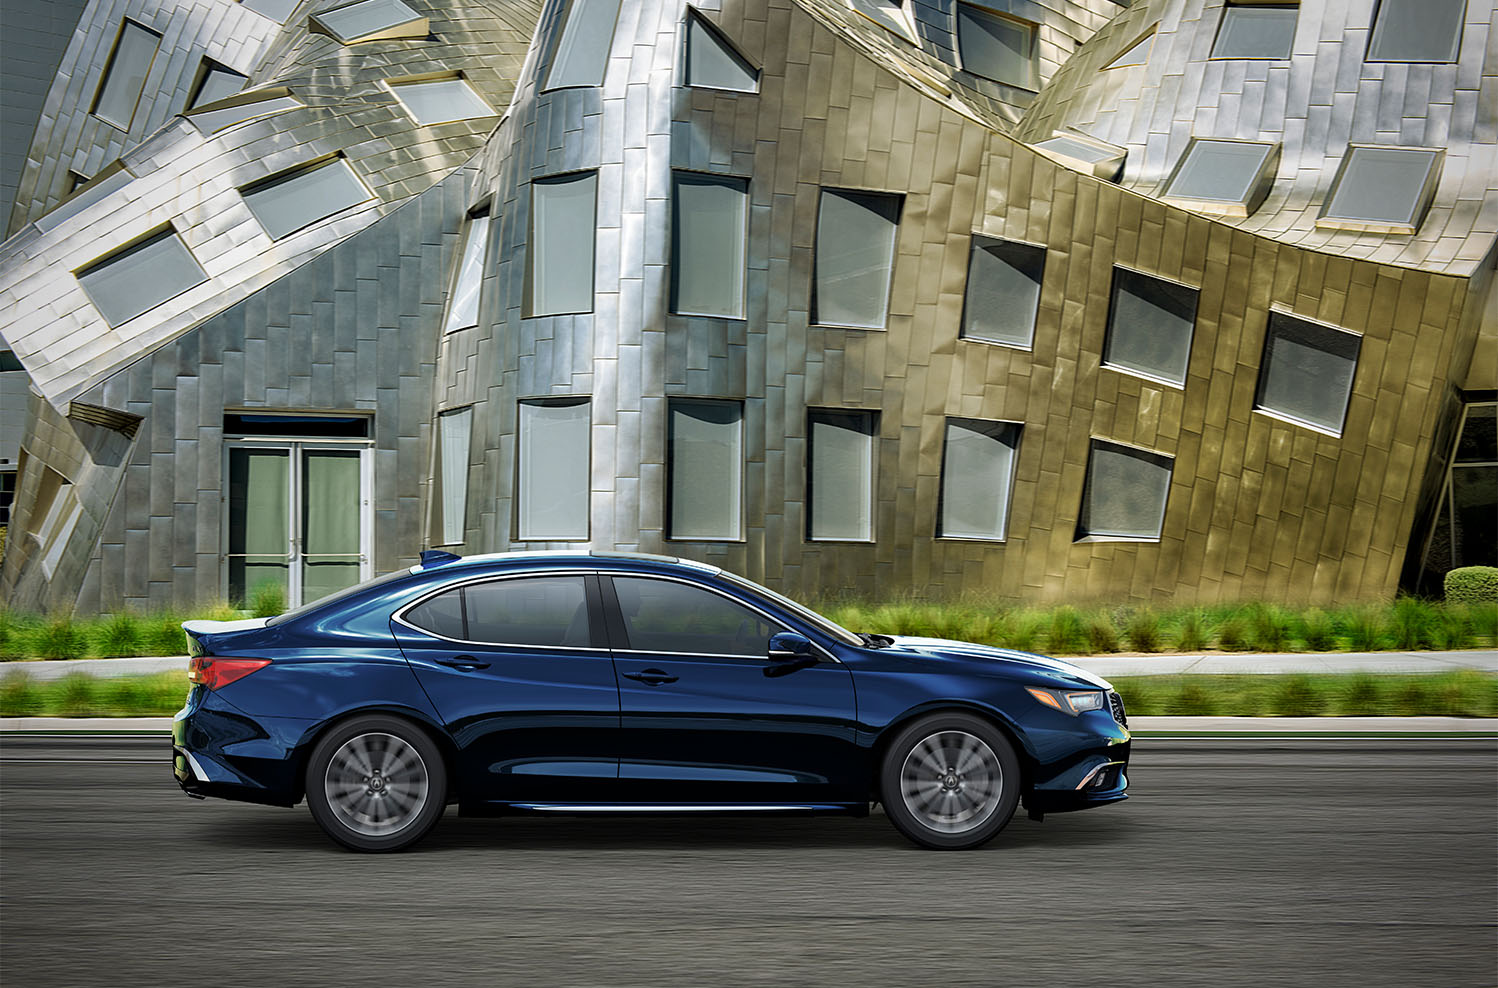 Lease an Acura TLX in Westchester County